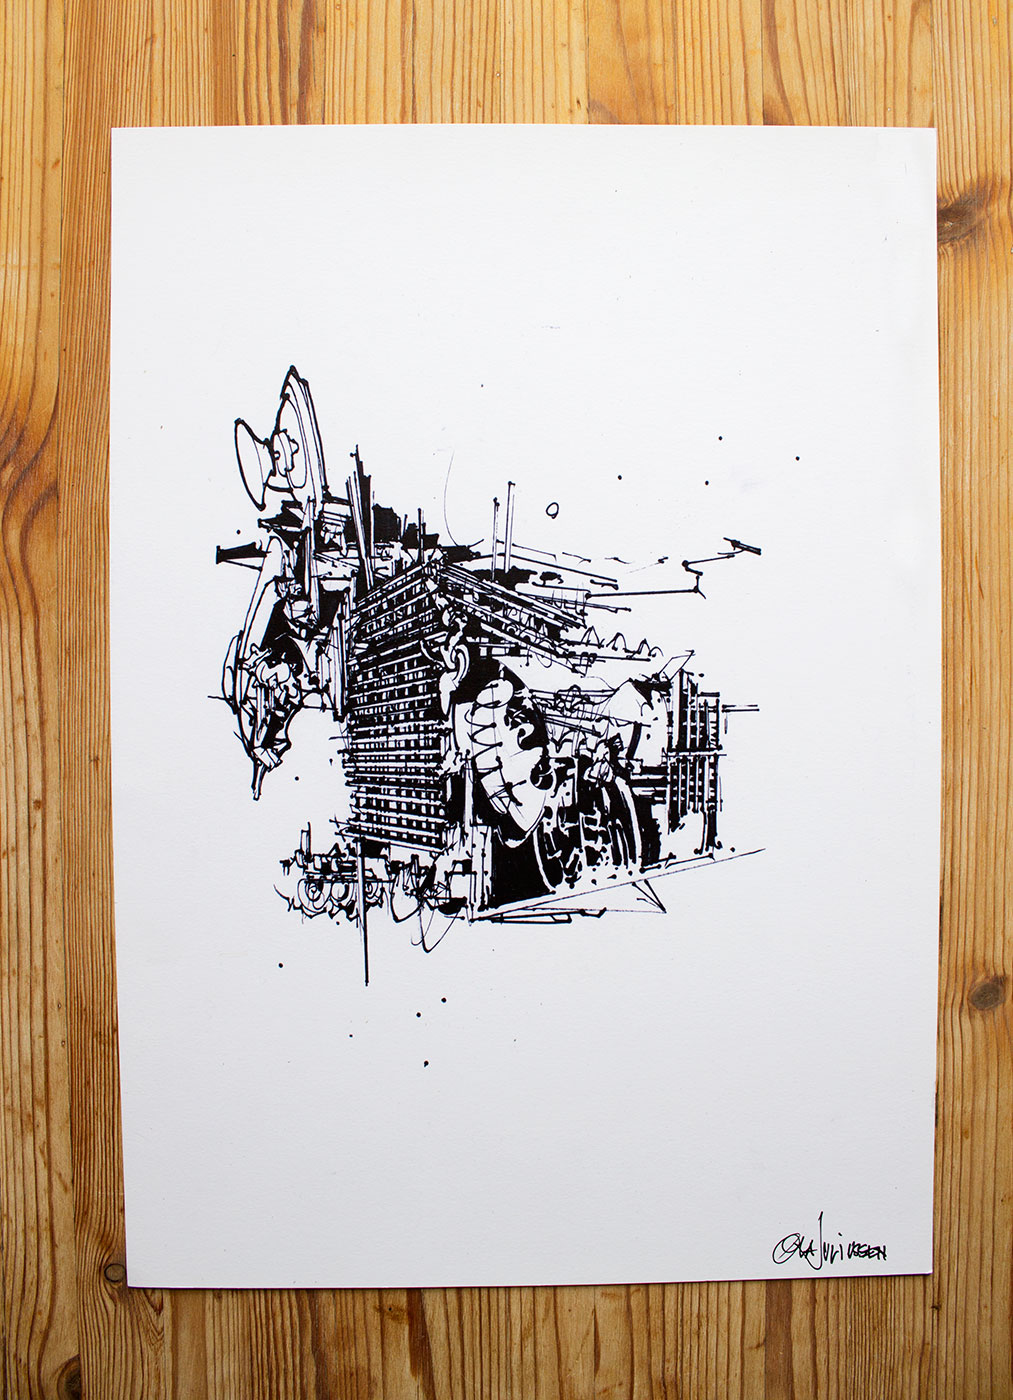 posters-prints, giclee-print, abstract, geometric, monochrome, architecture, patterns, black, white, ink, paper, abstract-forms, architectural, black-and-white, Buy original high quality art. Paintings, drawings, limited edition prints & posters by talented artists.